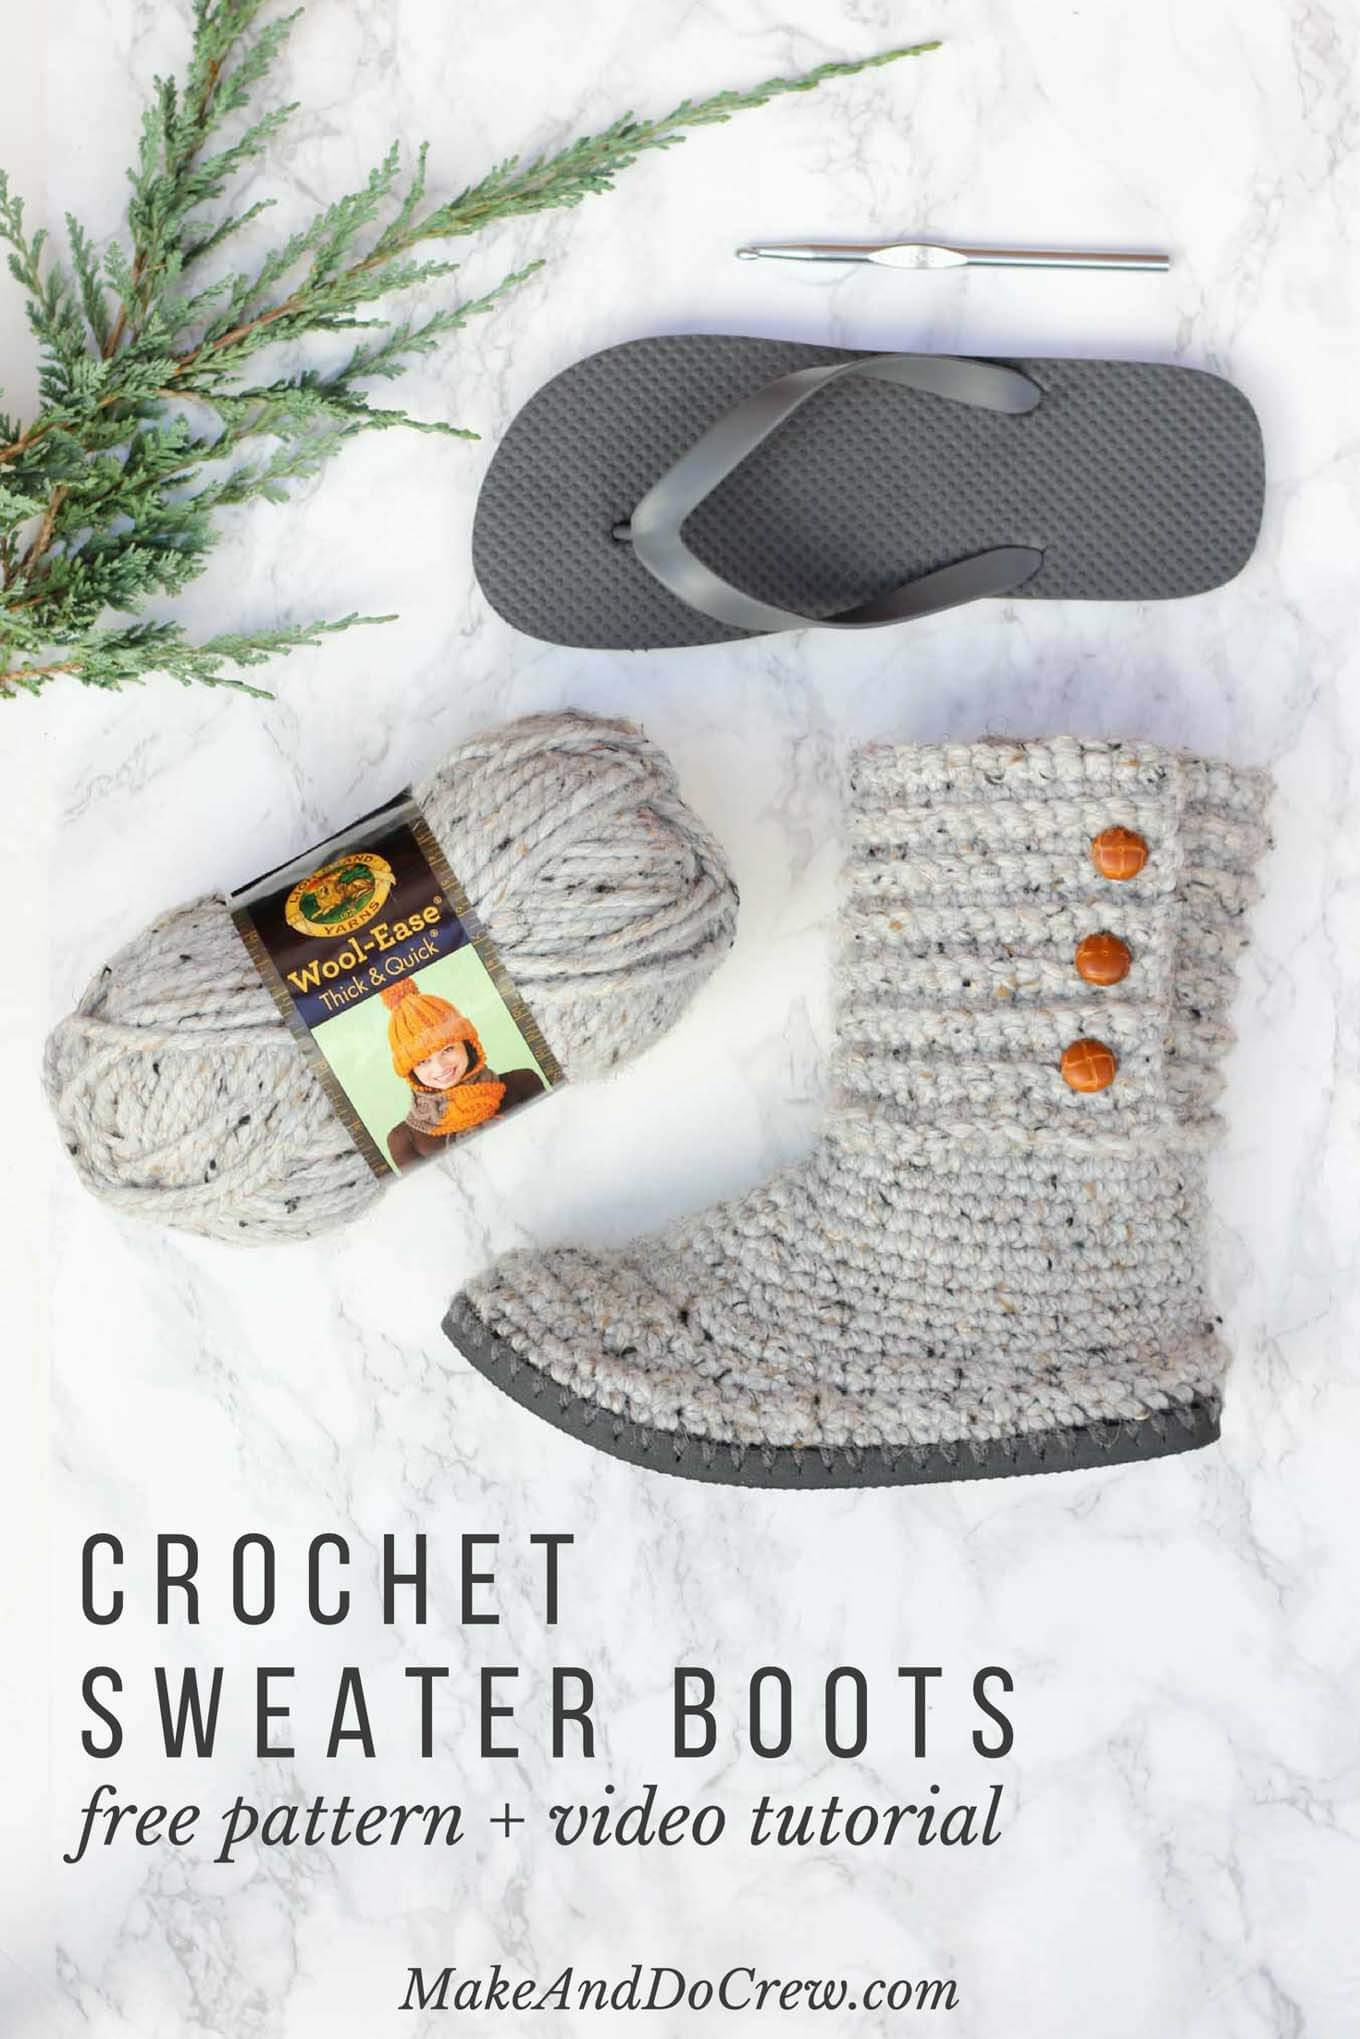 With this free pattern and crochet video tutorial you can make your own look-a-like crochet Uggs! These crochet UGG boots with flip flops for soles make great outdoor shoes or house slippers. Made with Lion Brand Wool Ease Thick and Quick in Grey Marble.With this free pattern and crochet video tutorial you can make your own look-a-like crochet Uggs! These crochet boots with flip flops for soles make great outdoor shoes or house slippers. Made with Lion Brand Wool Ease Thick and Quick in Grey Marble.